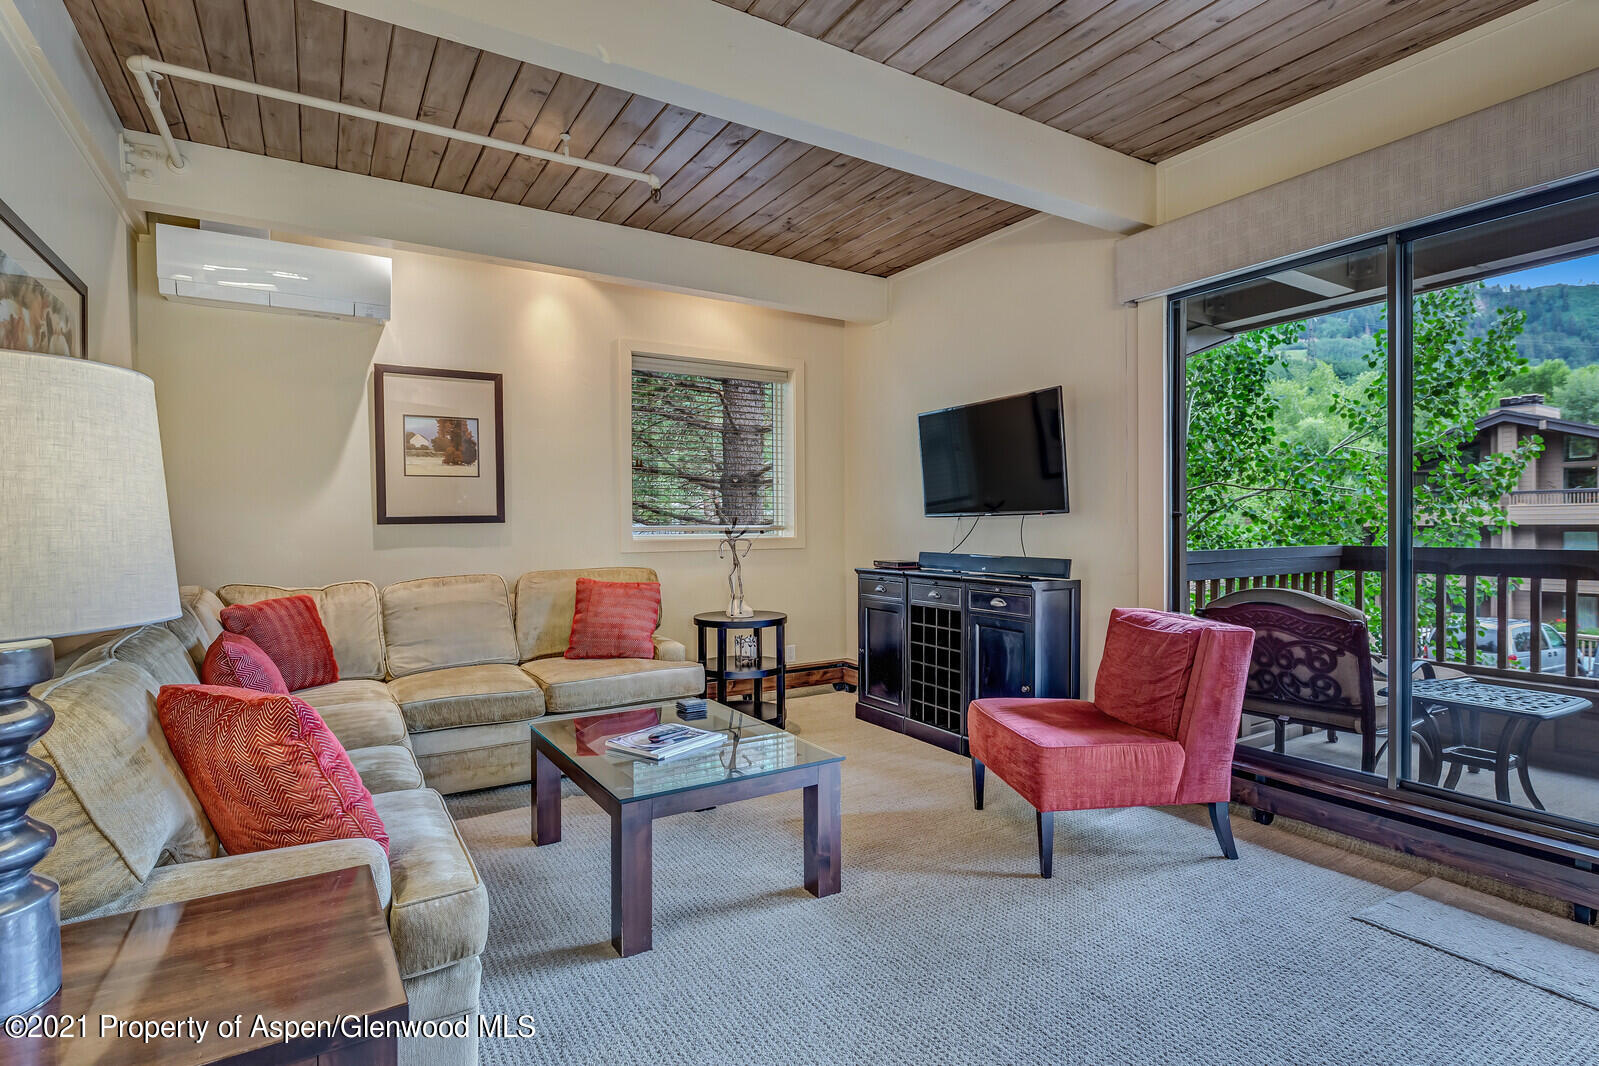 Premier one bedroom one bath, second floor condominium, with easy access to elevator and stairs. This, spacious corner unit offers high quality finishes, plus in unit washer and dryer. Living room has sofa bed extra guests. Relax on one of two decks while enjoying views of Aspen Mountain. Owner and guests receive access to world-class amenities including a front desk, concierge, bell staff, conference center, shuttle service, gym, breakfast, and lunch cafe, two pools, three hot tubs, hard and clay tennis courts, and complete onsite property and rental management. Great rental history.